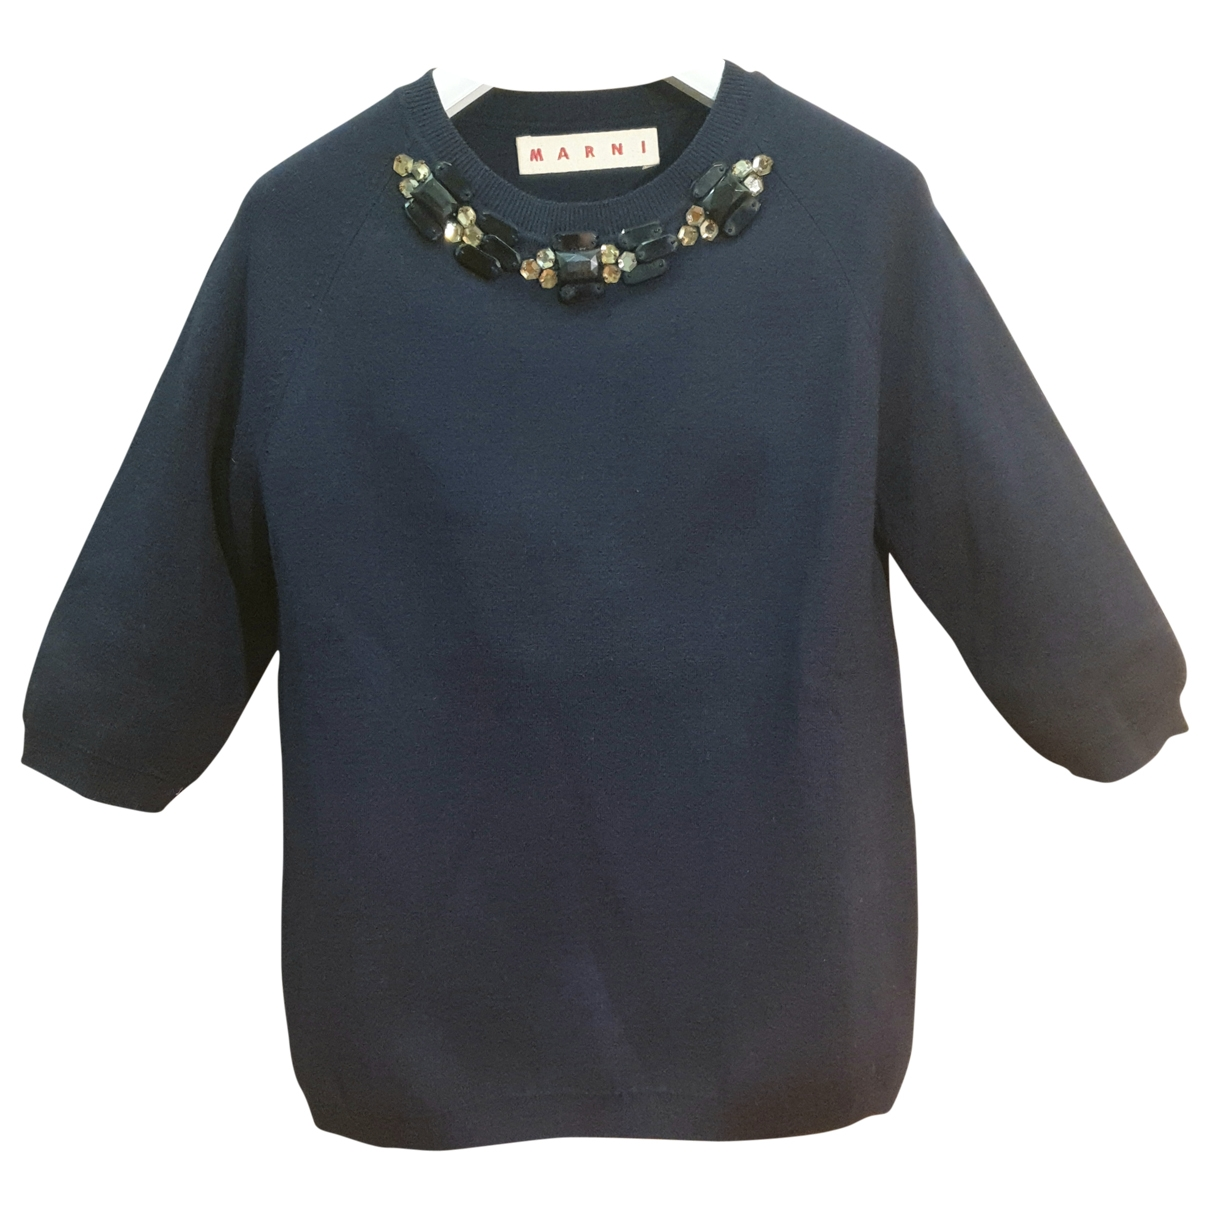 Marni \N Pullover in  Marine Wolle